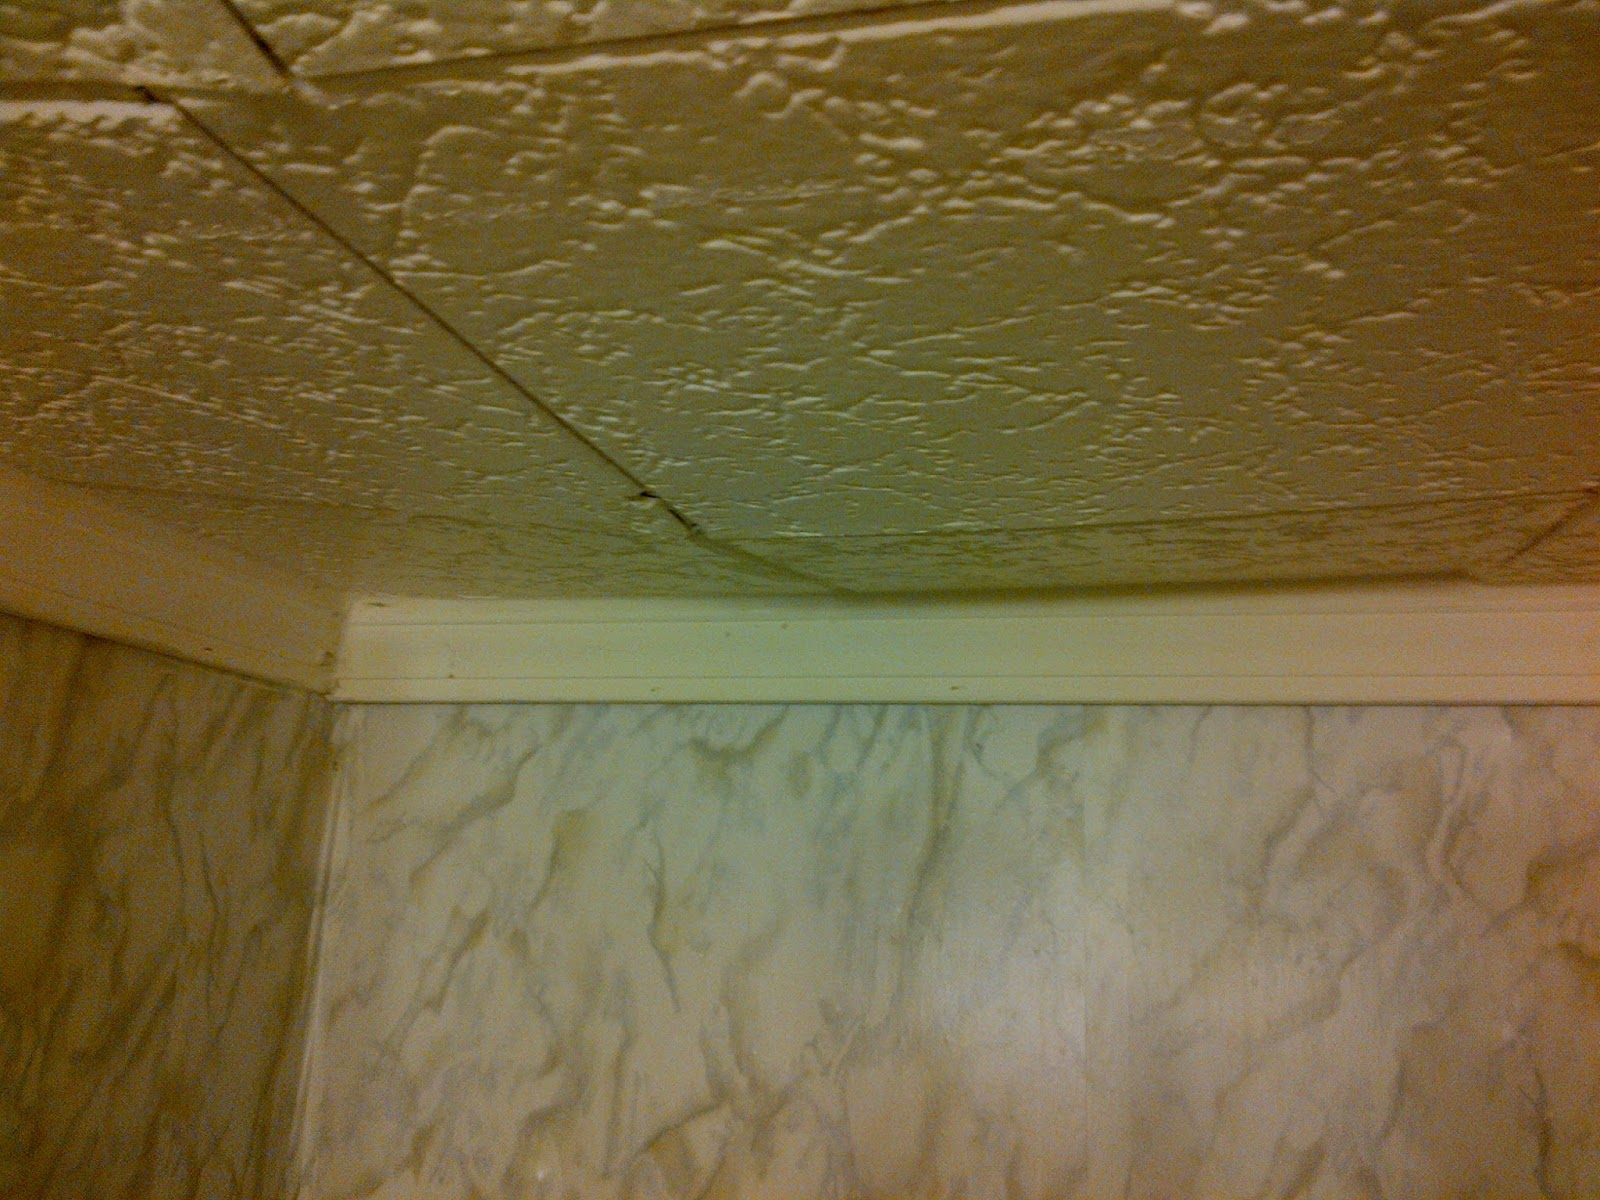 Mobile home textured ceiling panels motavera mobile home ceiling tiles and asbestos in dailygadgetfo Choice Image